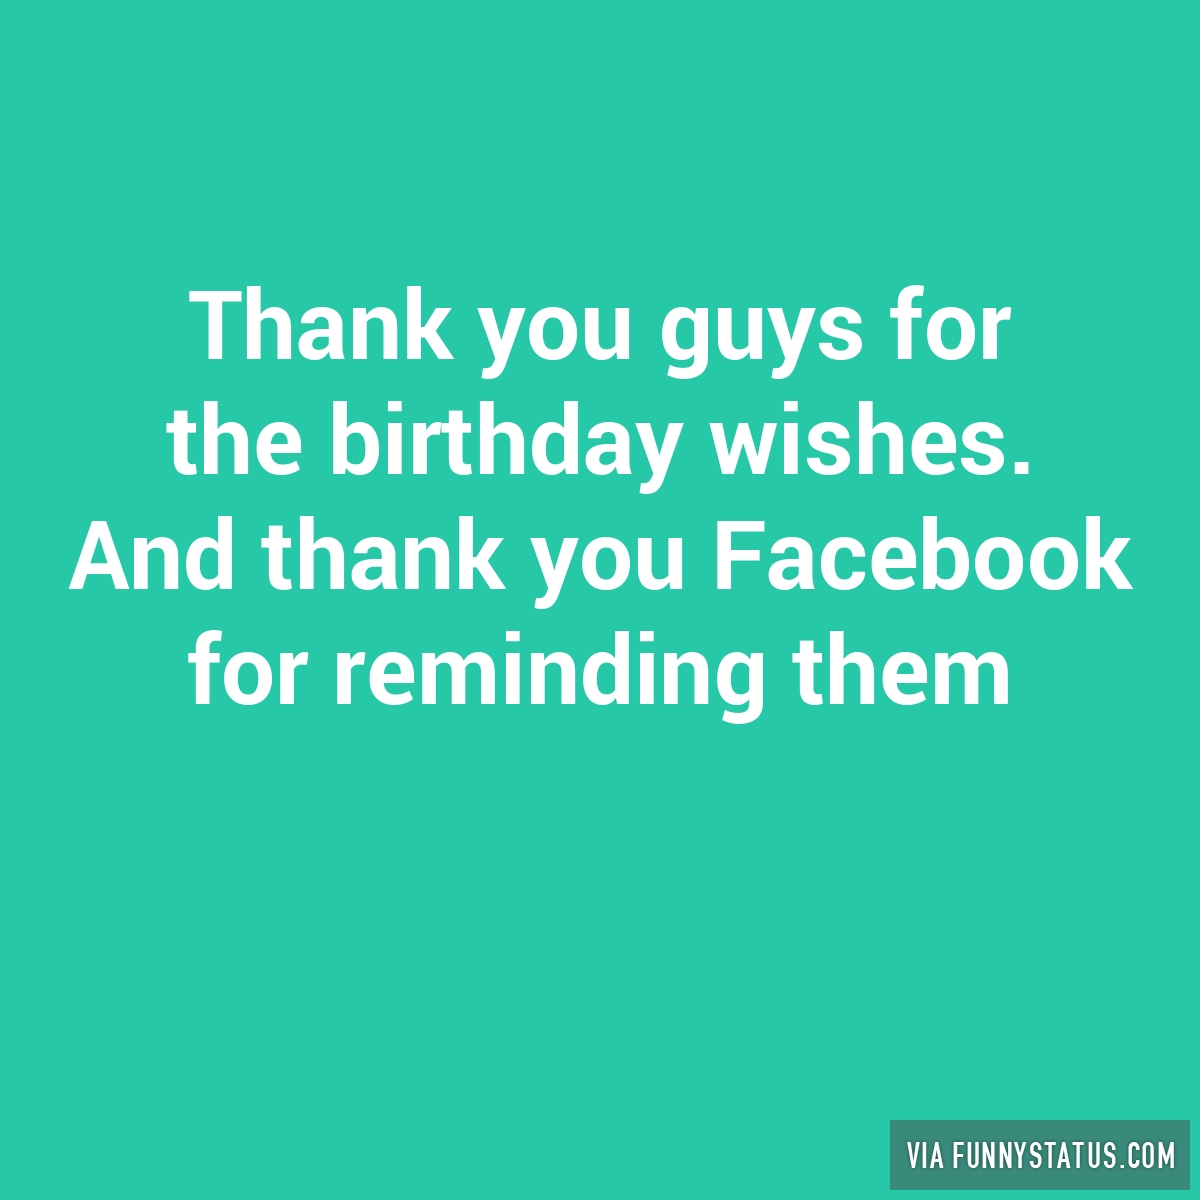 Funny Thank You Quotes For Birthday Wishes Hilarious Facebook Statuses